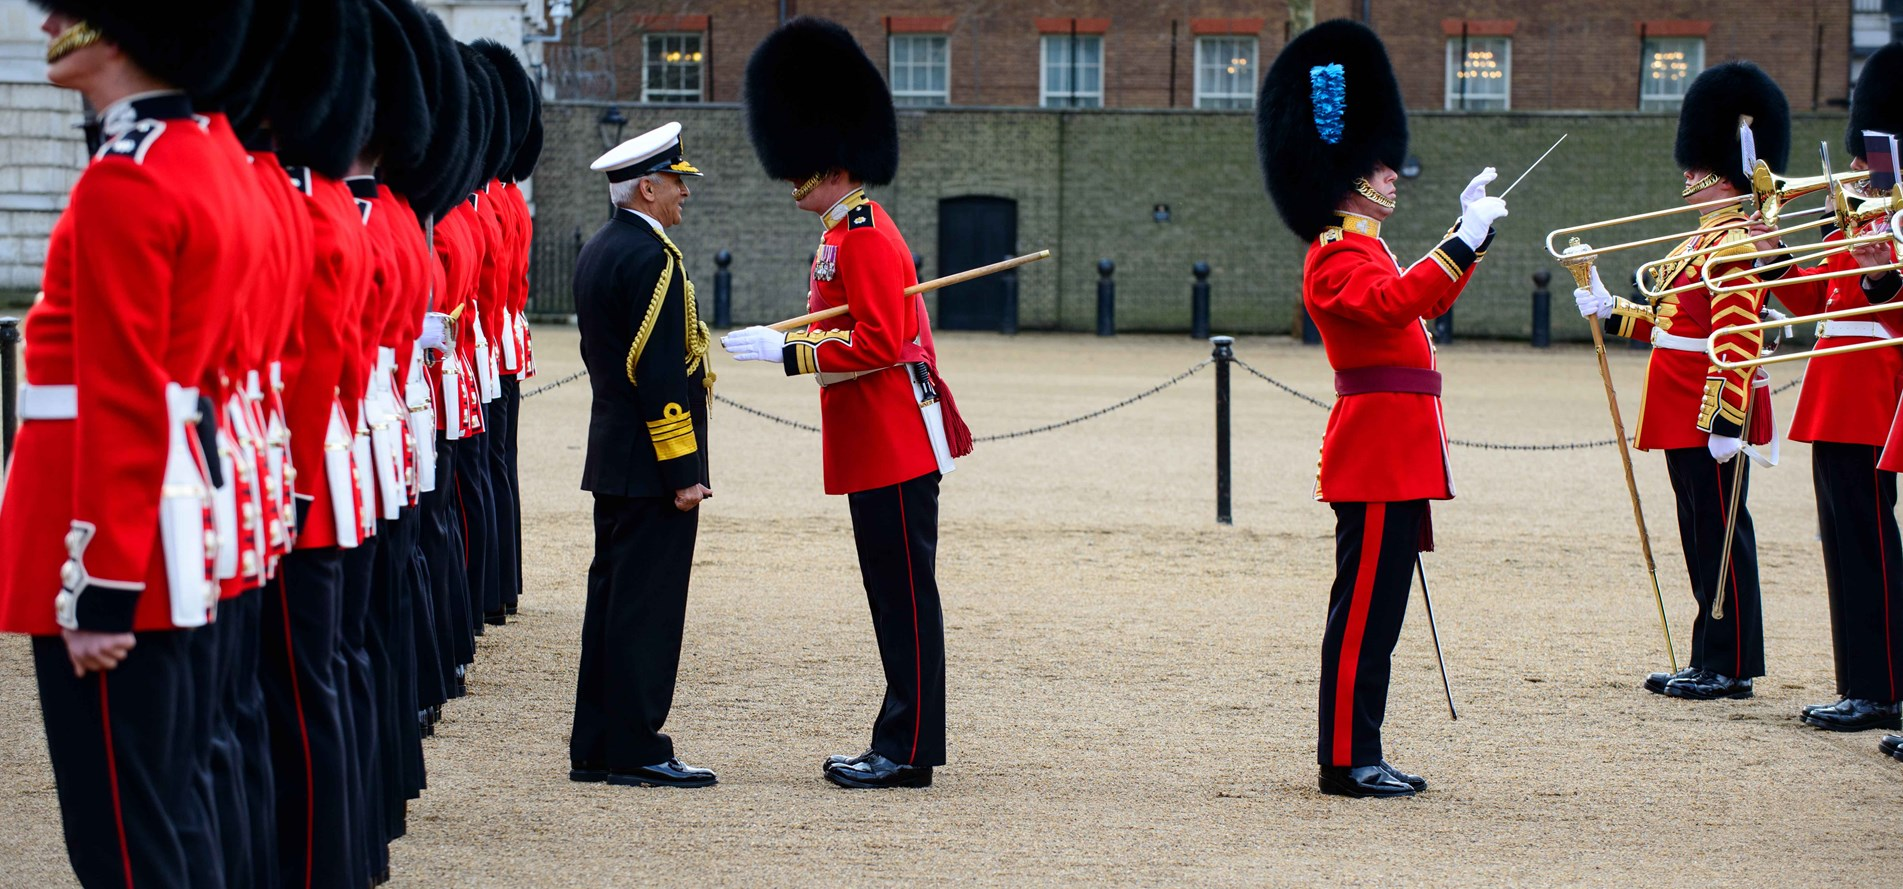 APOLOND-2019-020-0160-Indian Guard Of Honour-PR.JPG